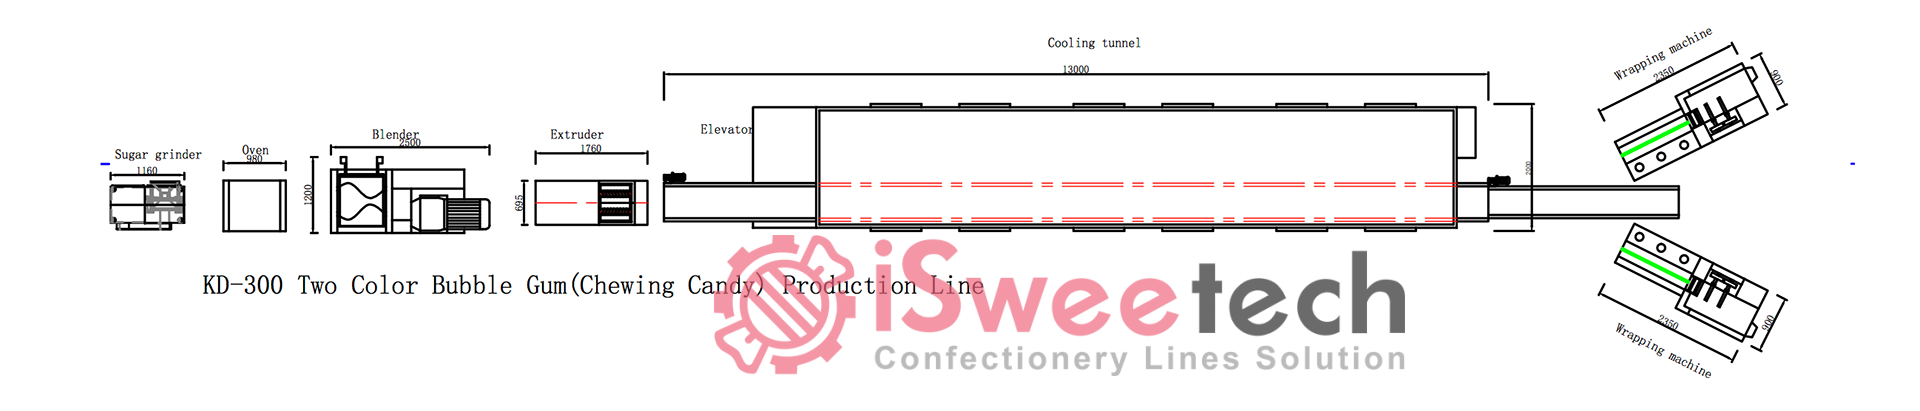 KD300 Cut & Wrapped Toffee/Chewing Candy Production Line